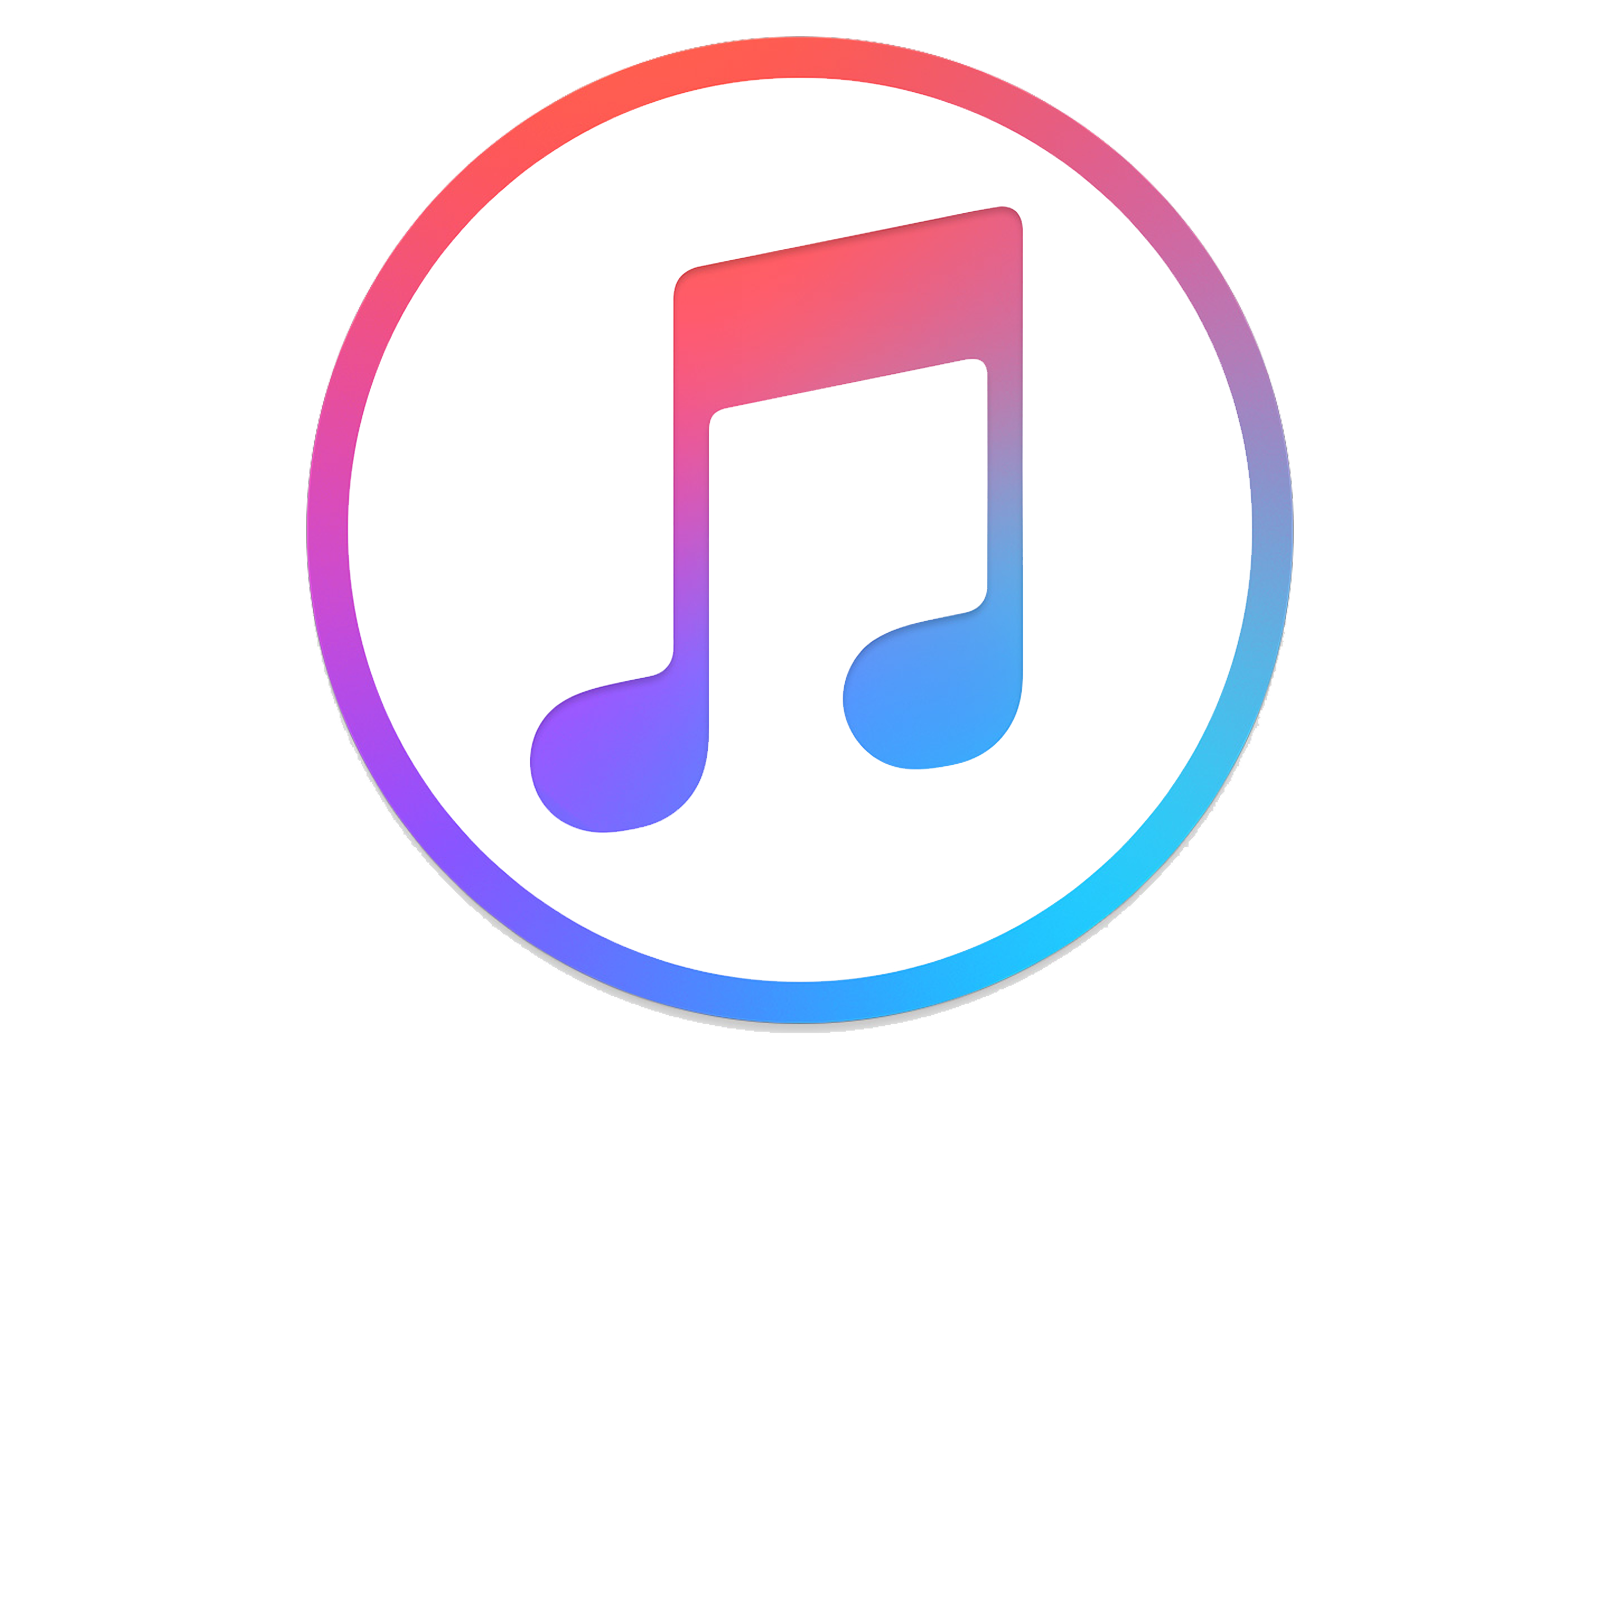 Apple music logo png. Android central